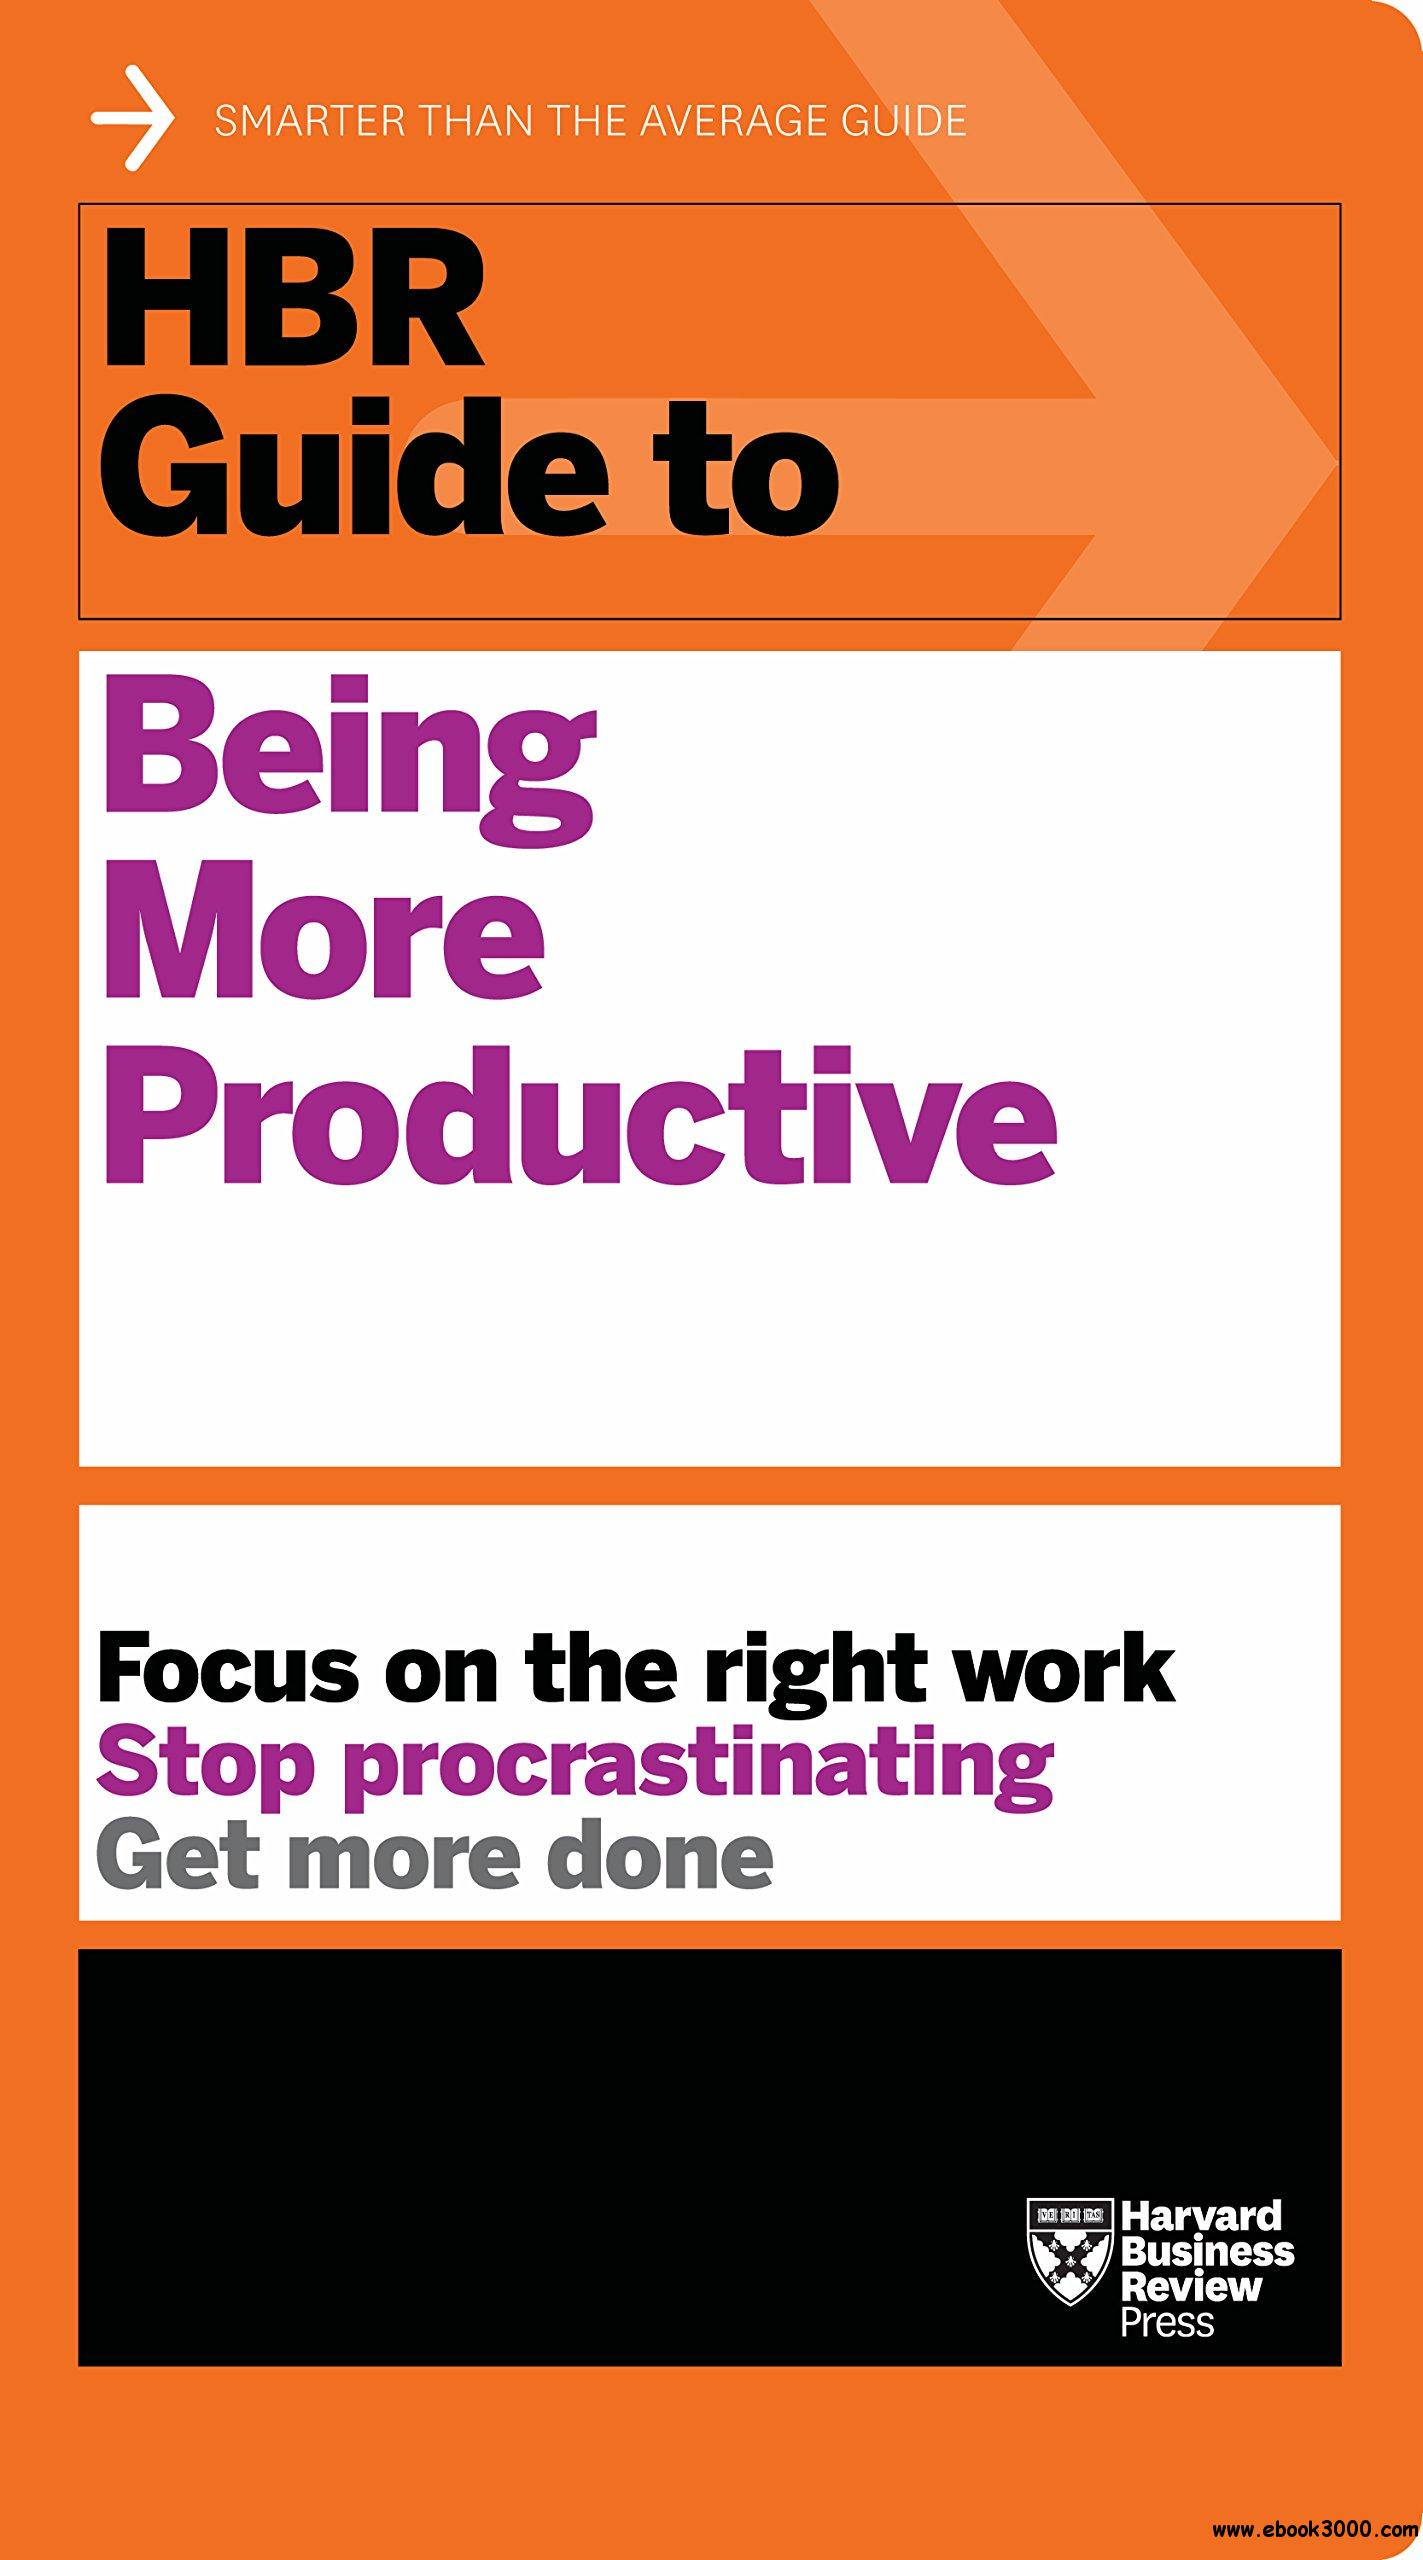 HBR Guide to Being More Productive